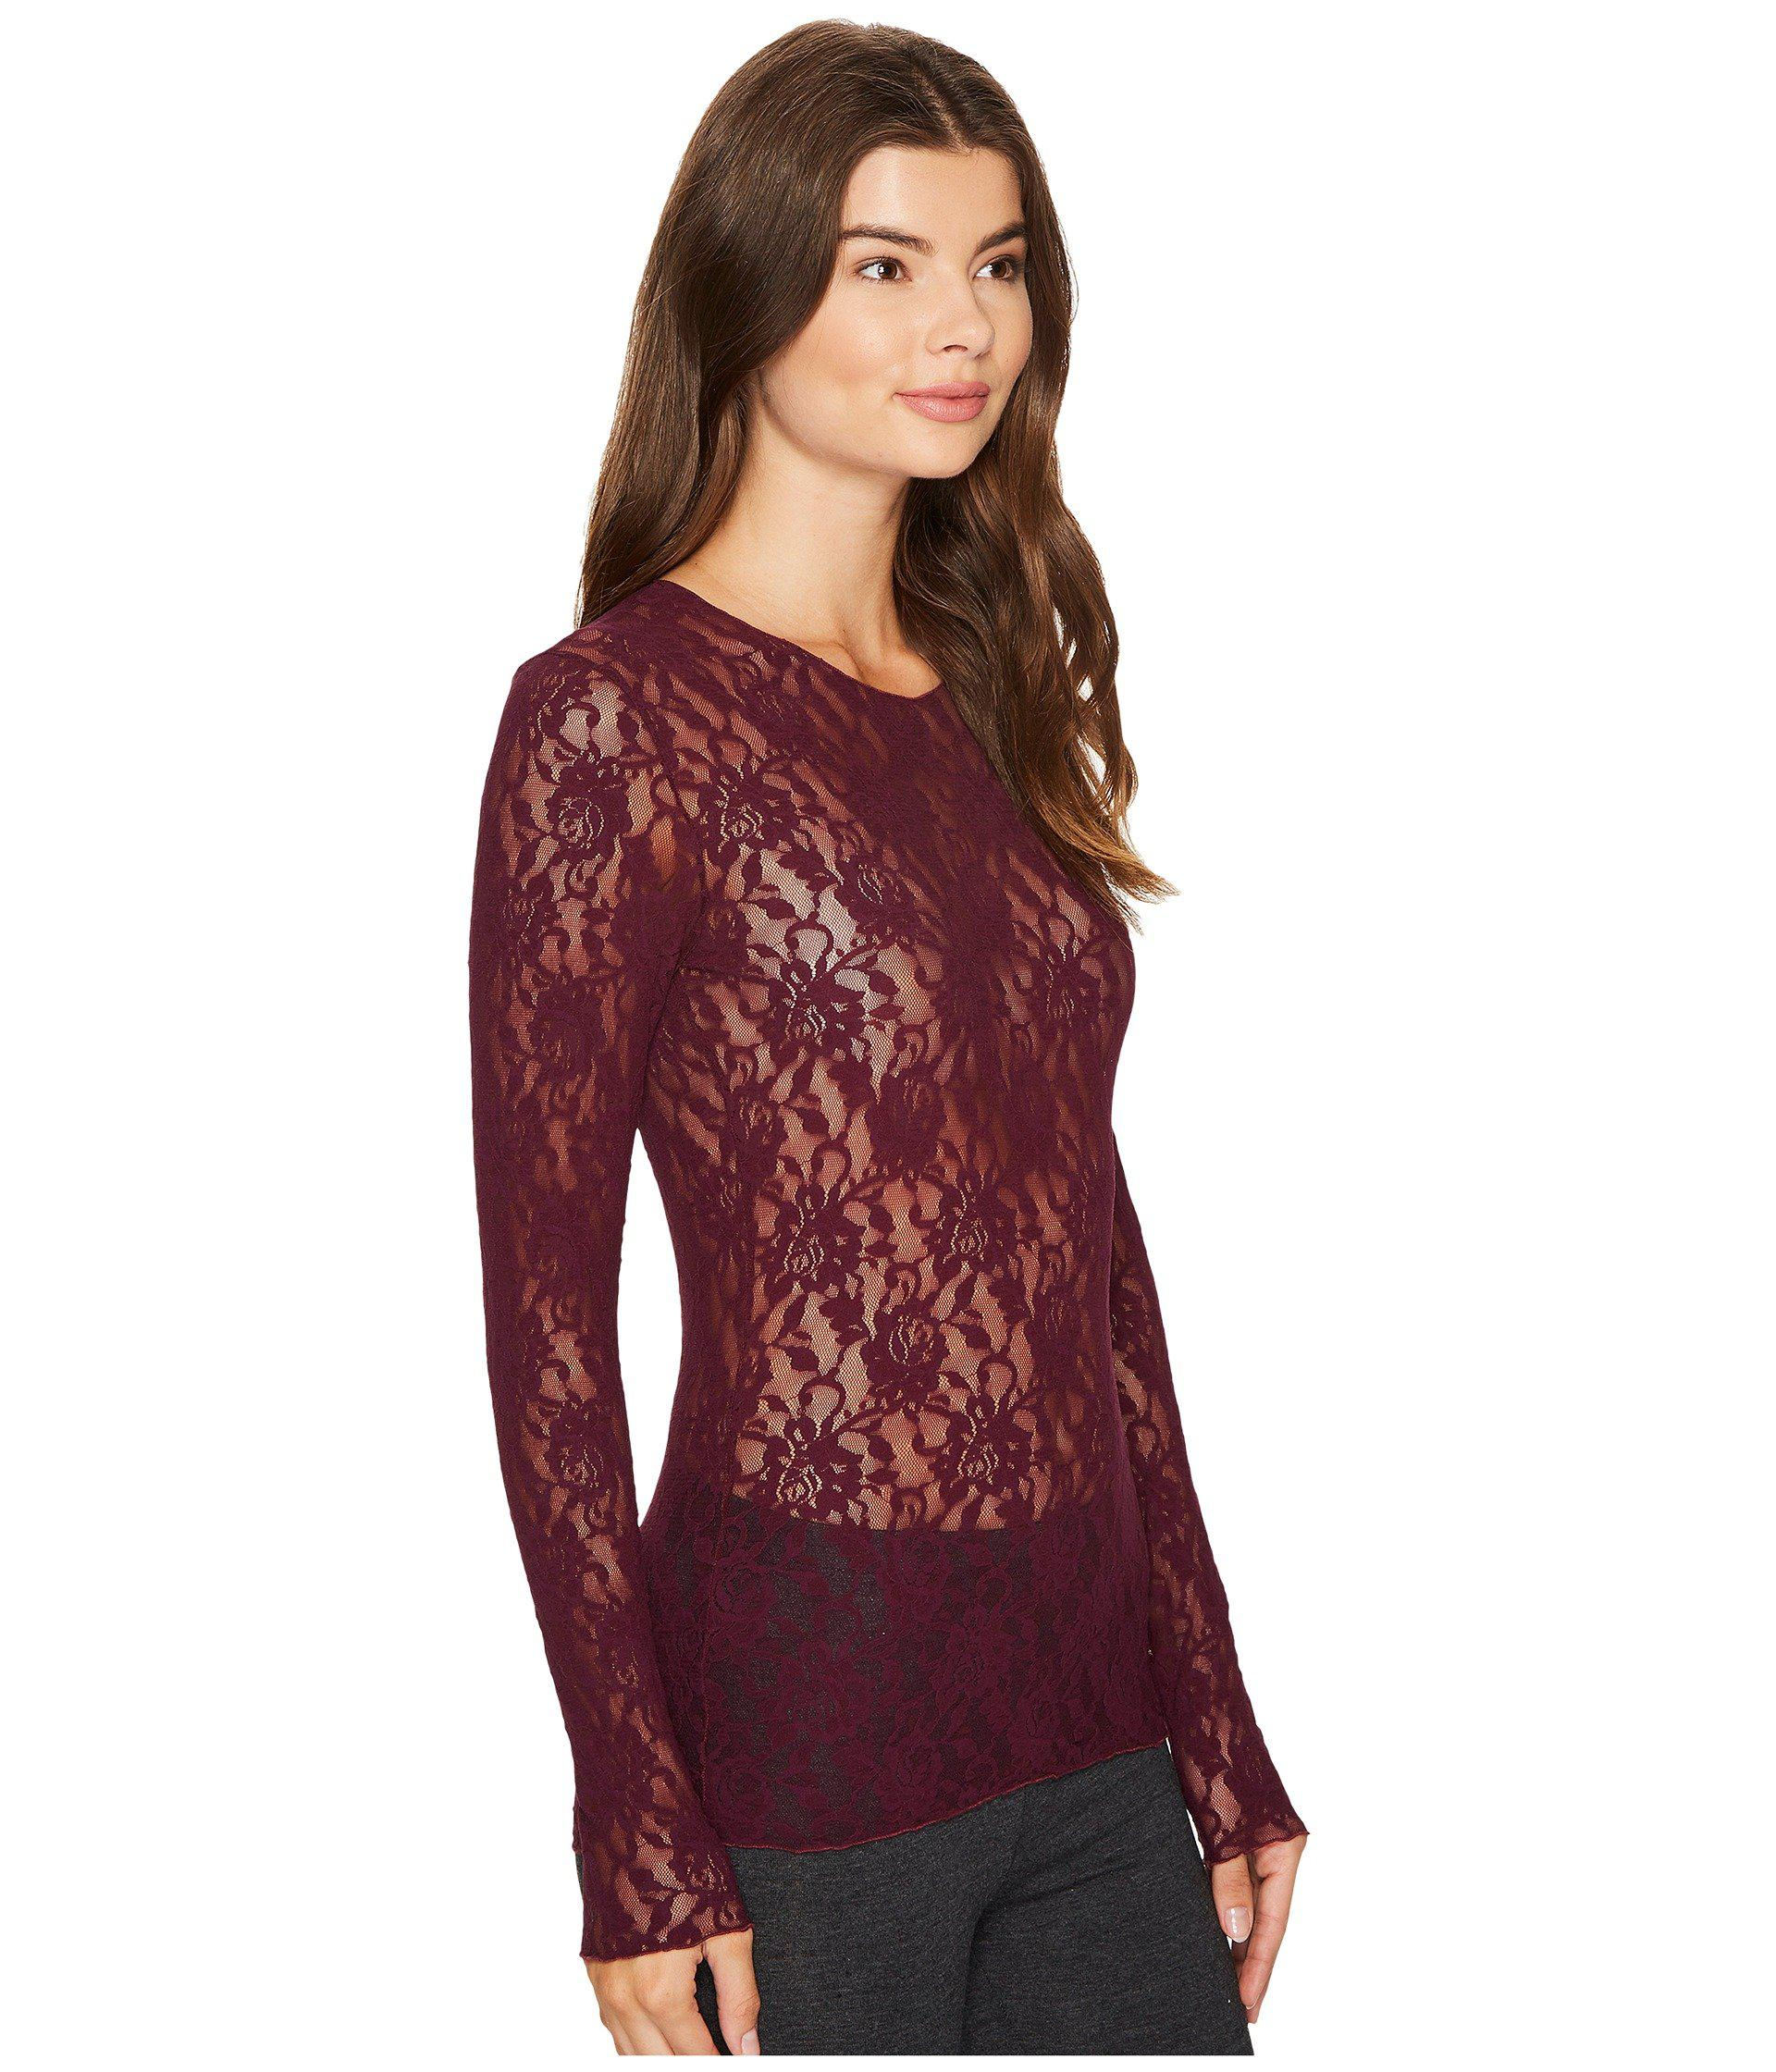 93f4d5dacb8d70 Hanky Panky Signature Lace Unlined Long Sleeve Top in Red - Lyst